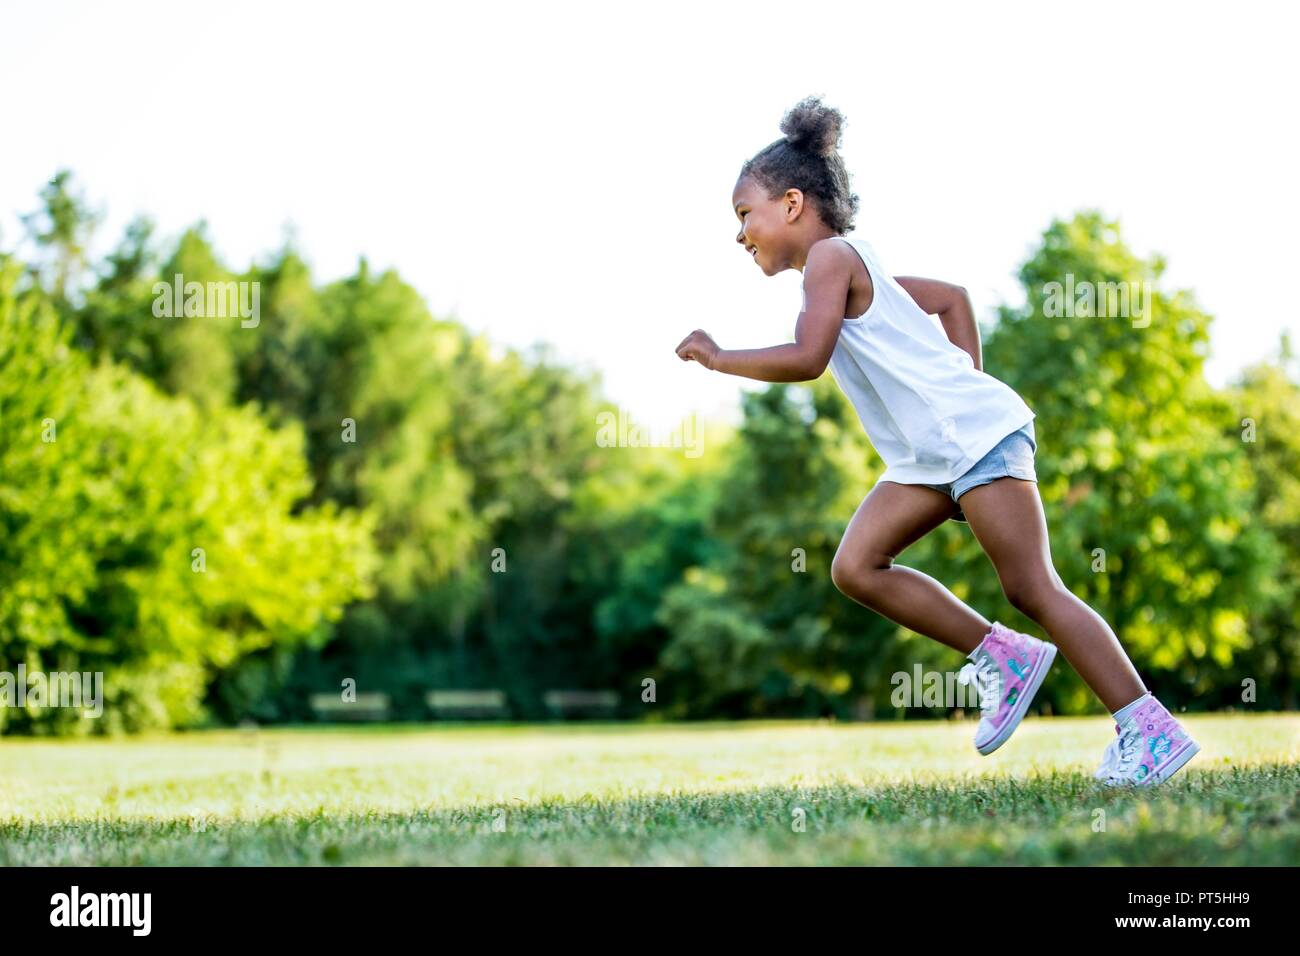 little girl running in park stock photos little girl running in